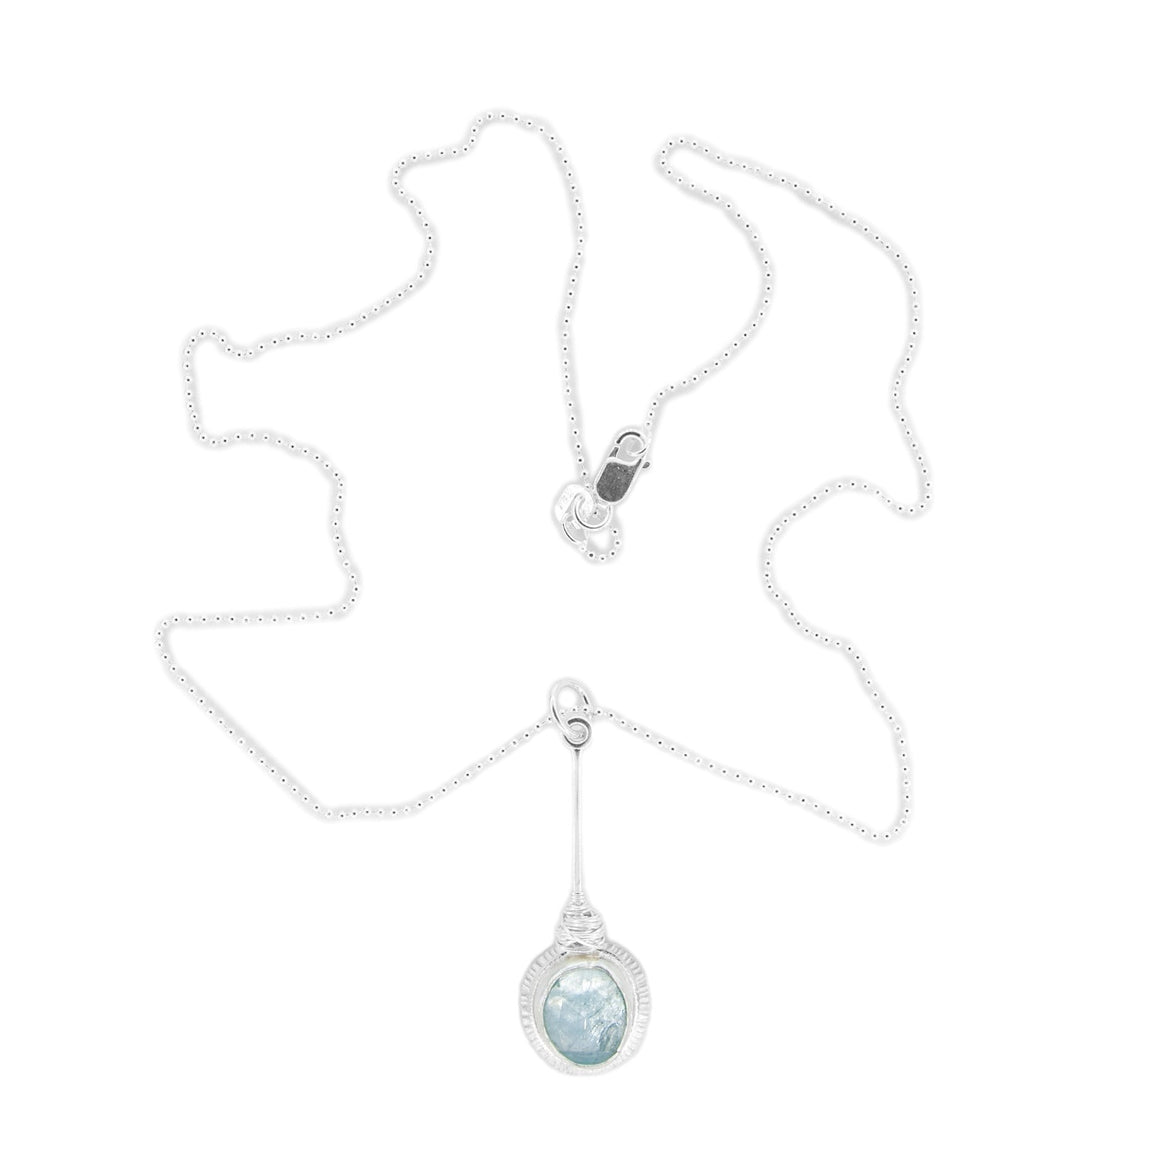 Aquamarine Silver Necklace by Original Sin Jewelry